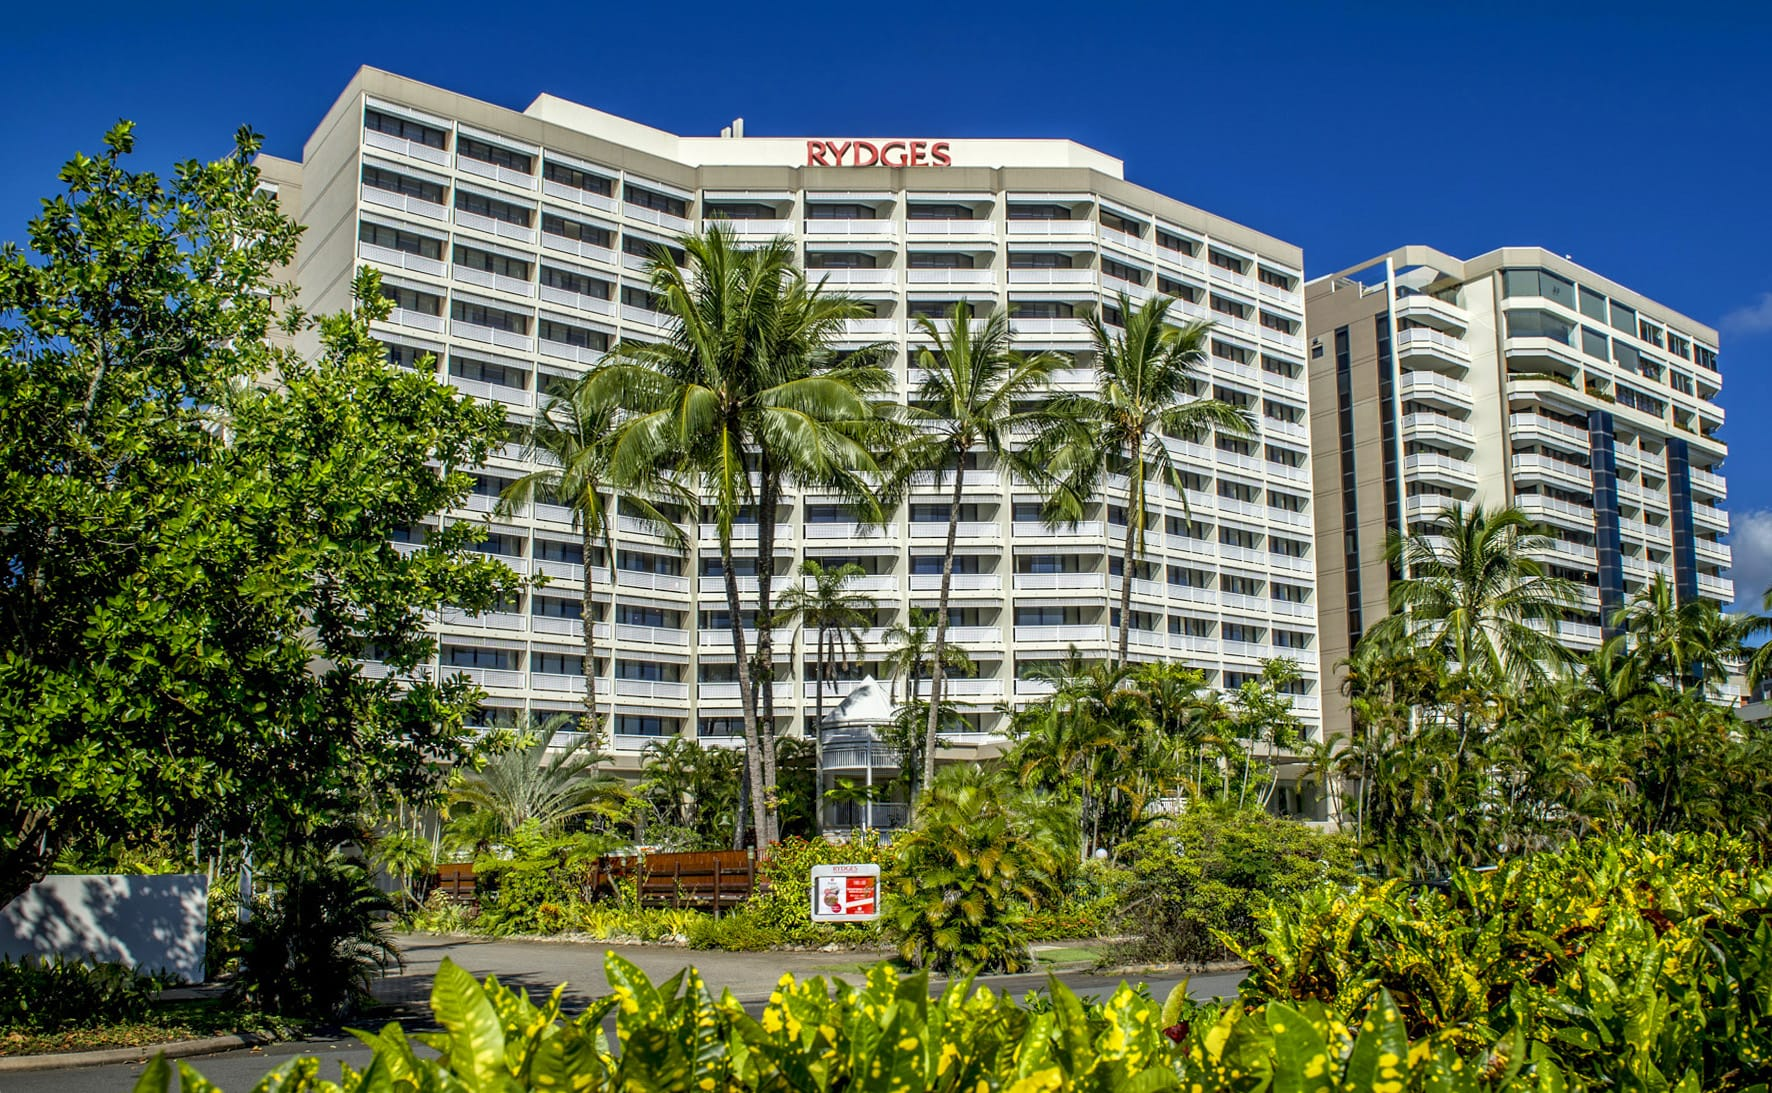 Cairns Rydges